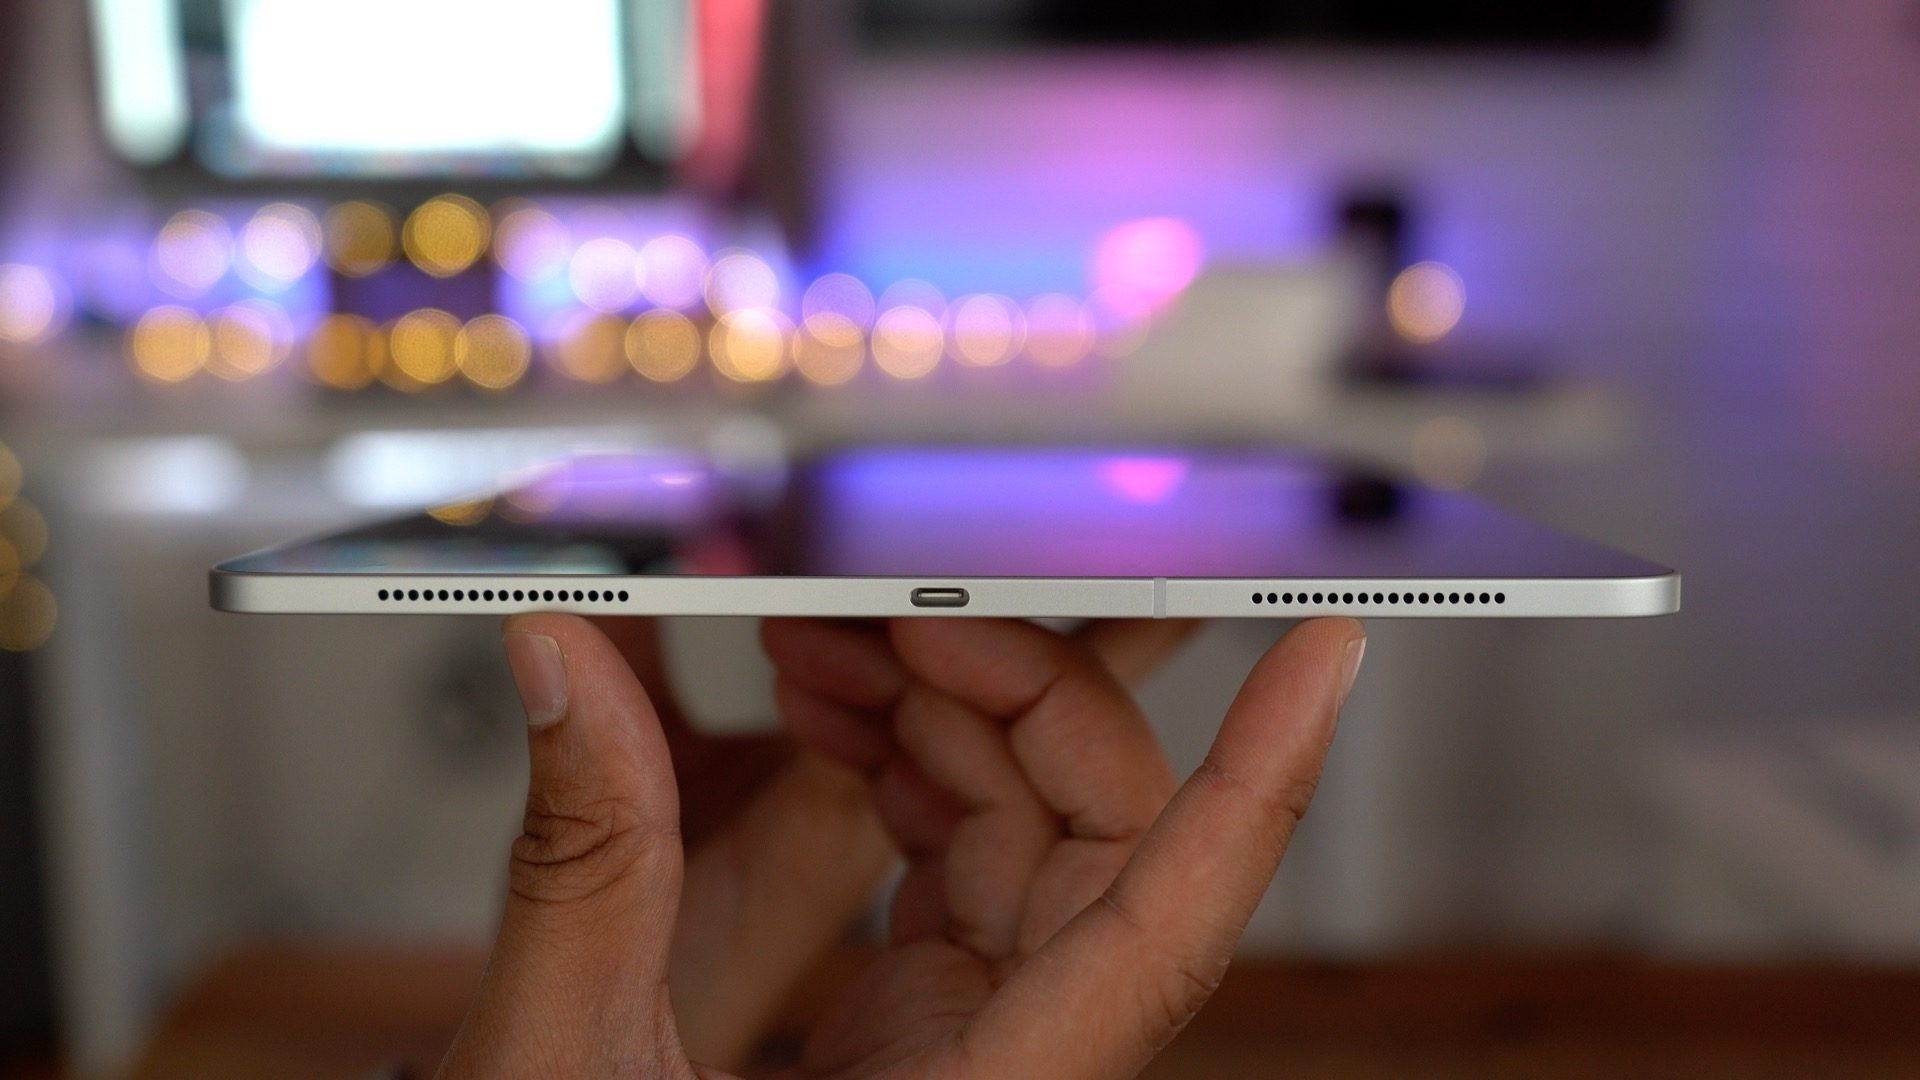 Apple responds to reports of bent iPad Pros